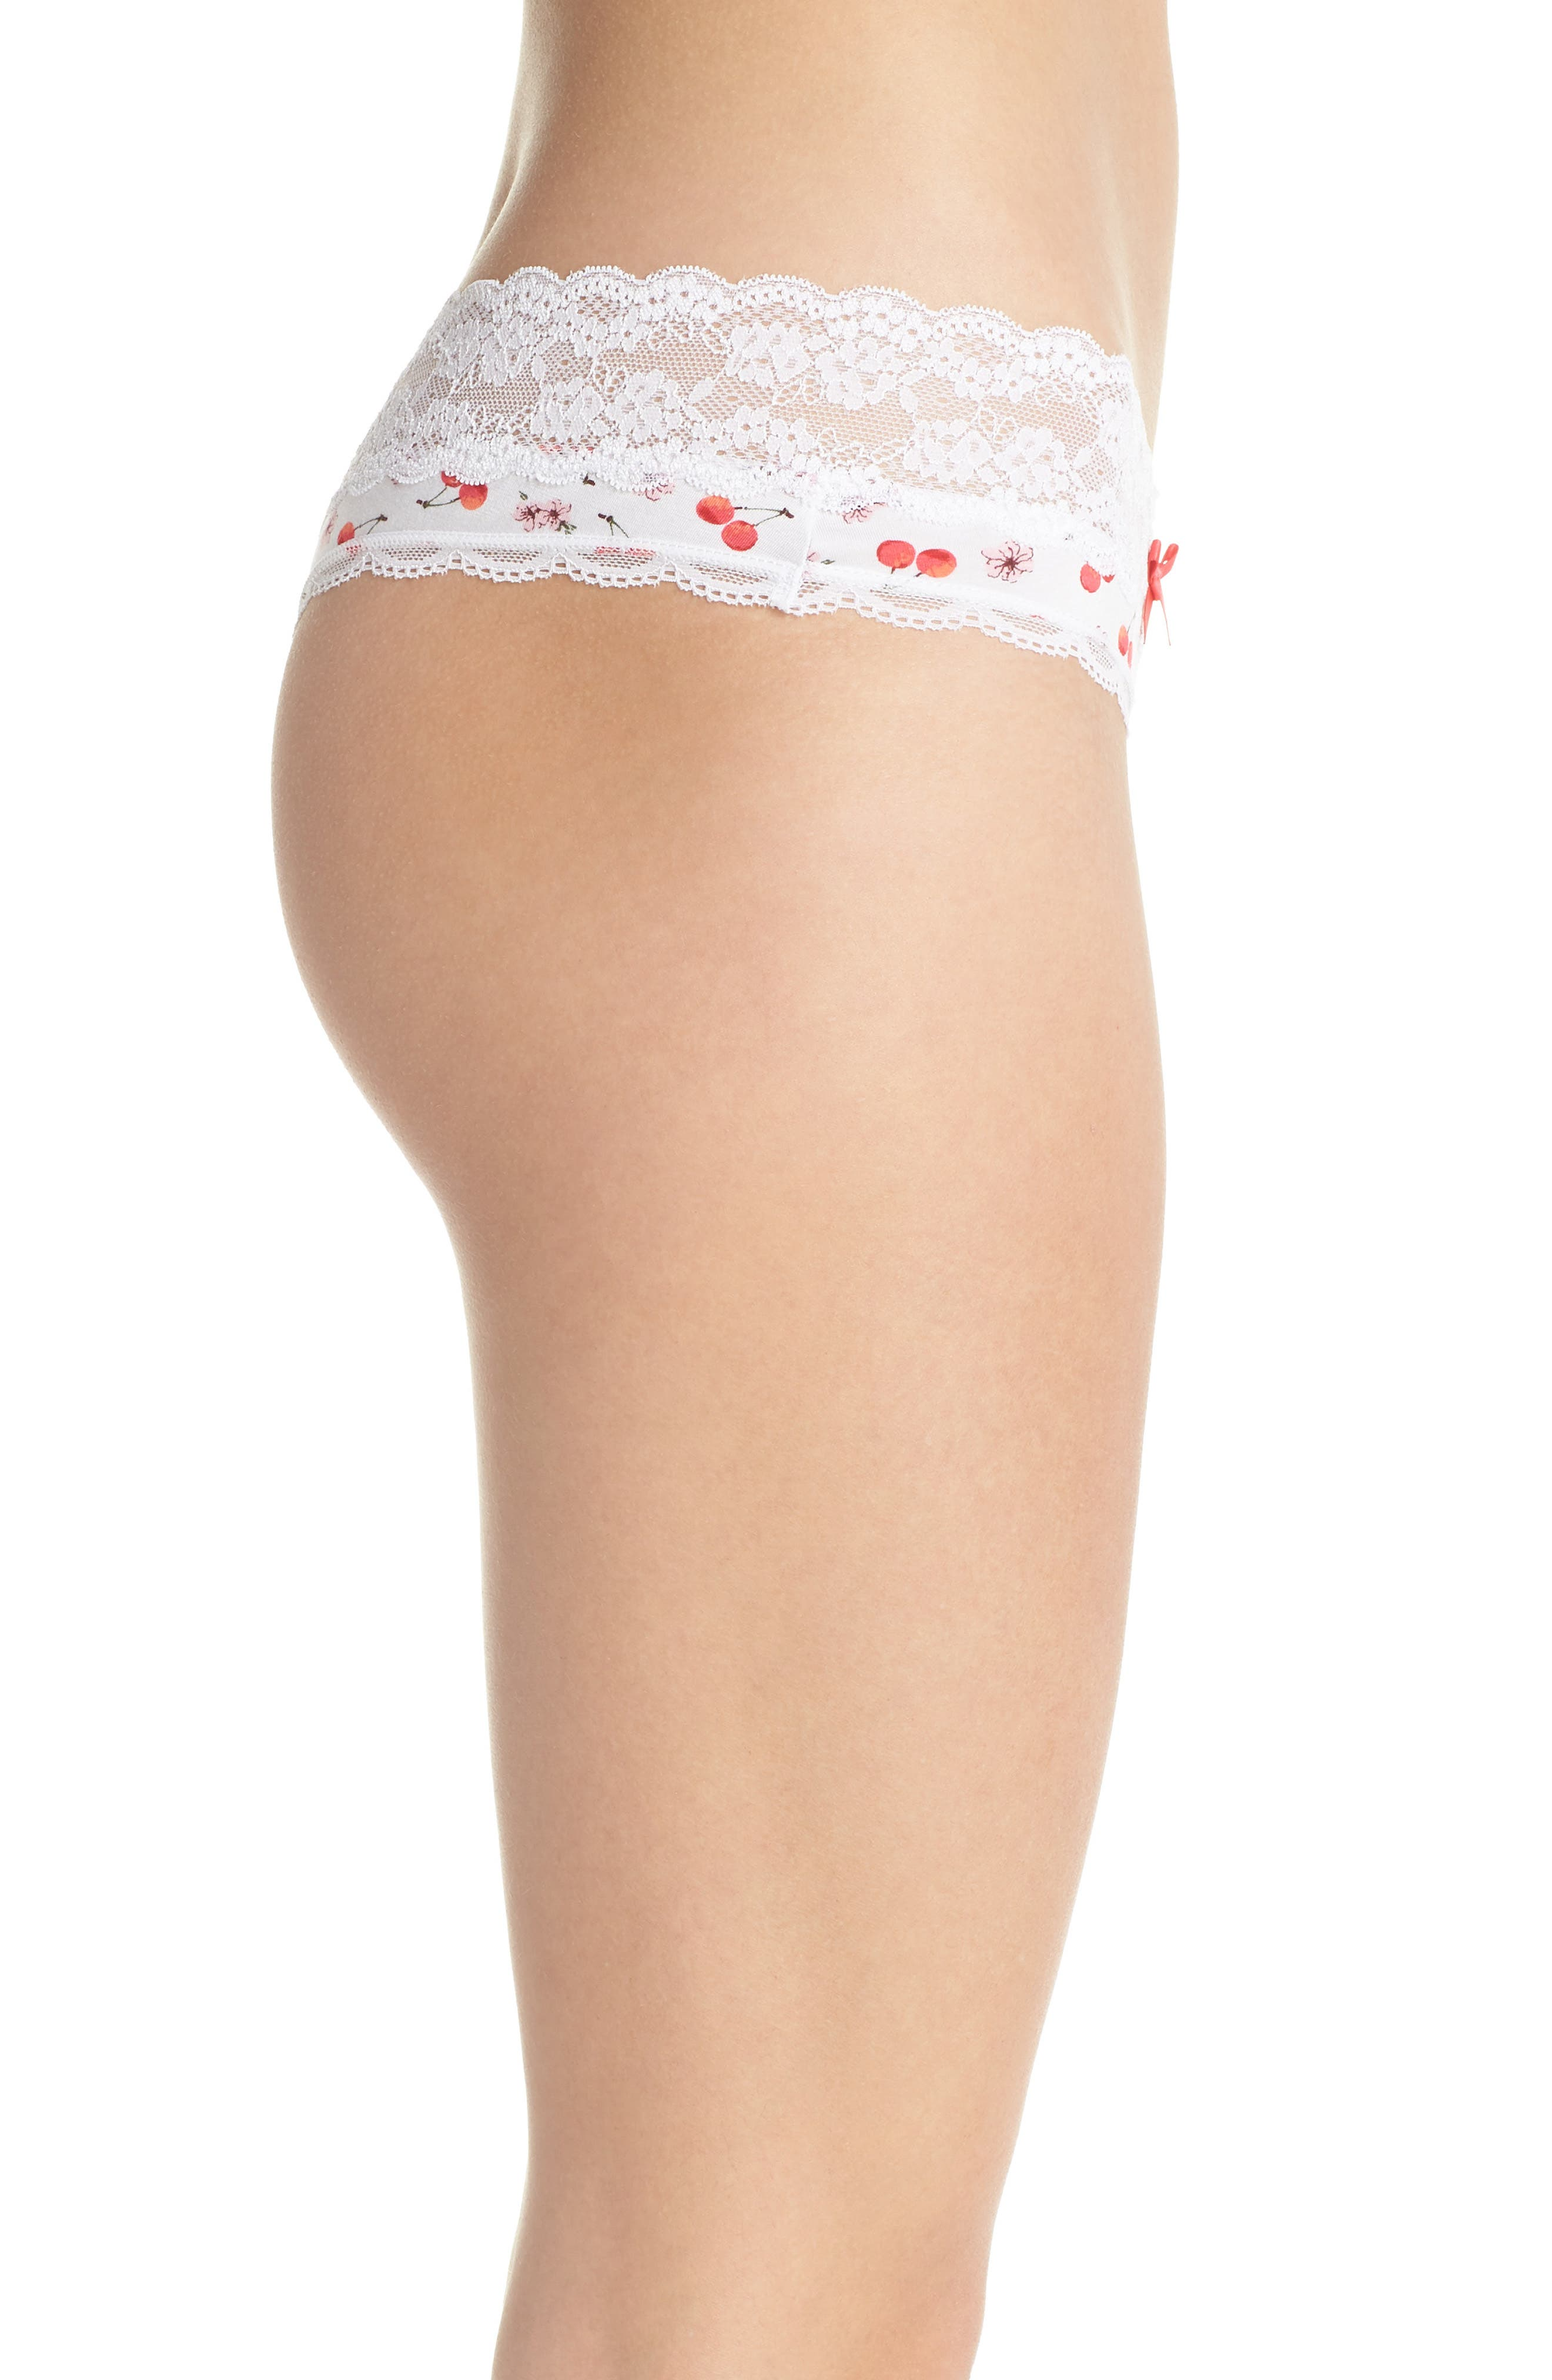 Lace Trim Low Rise Thong,                             Alternate thumbnail 3, color,                             White Cherry Blossom